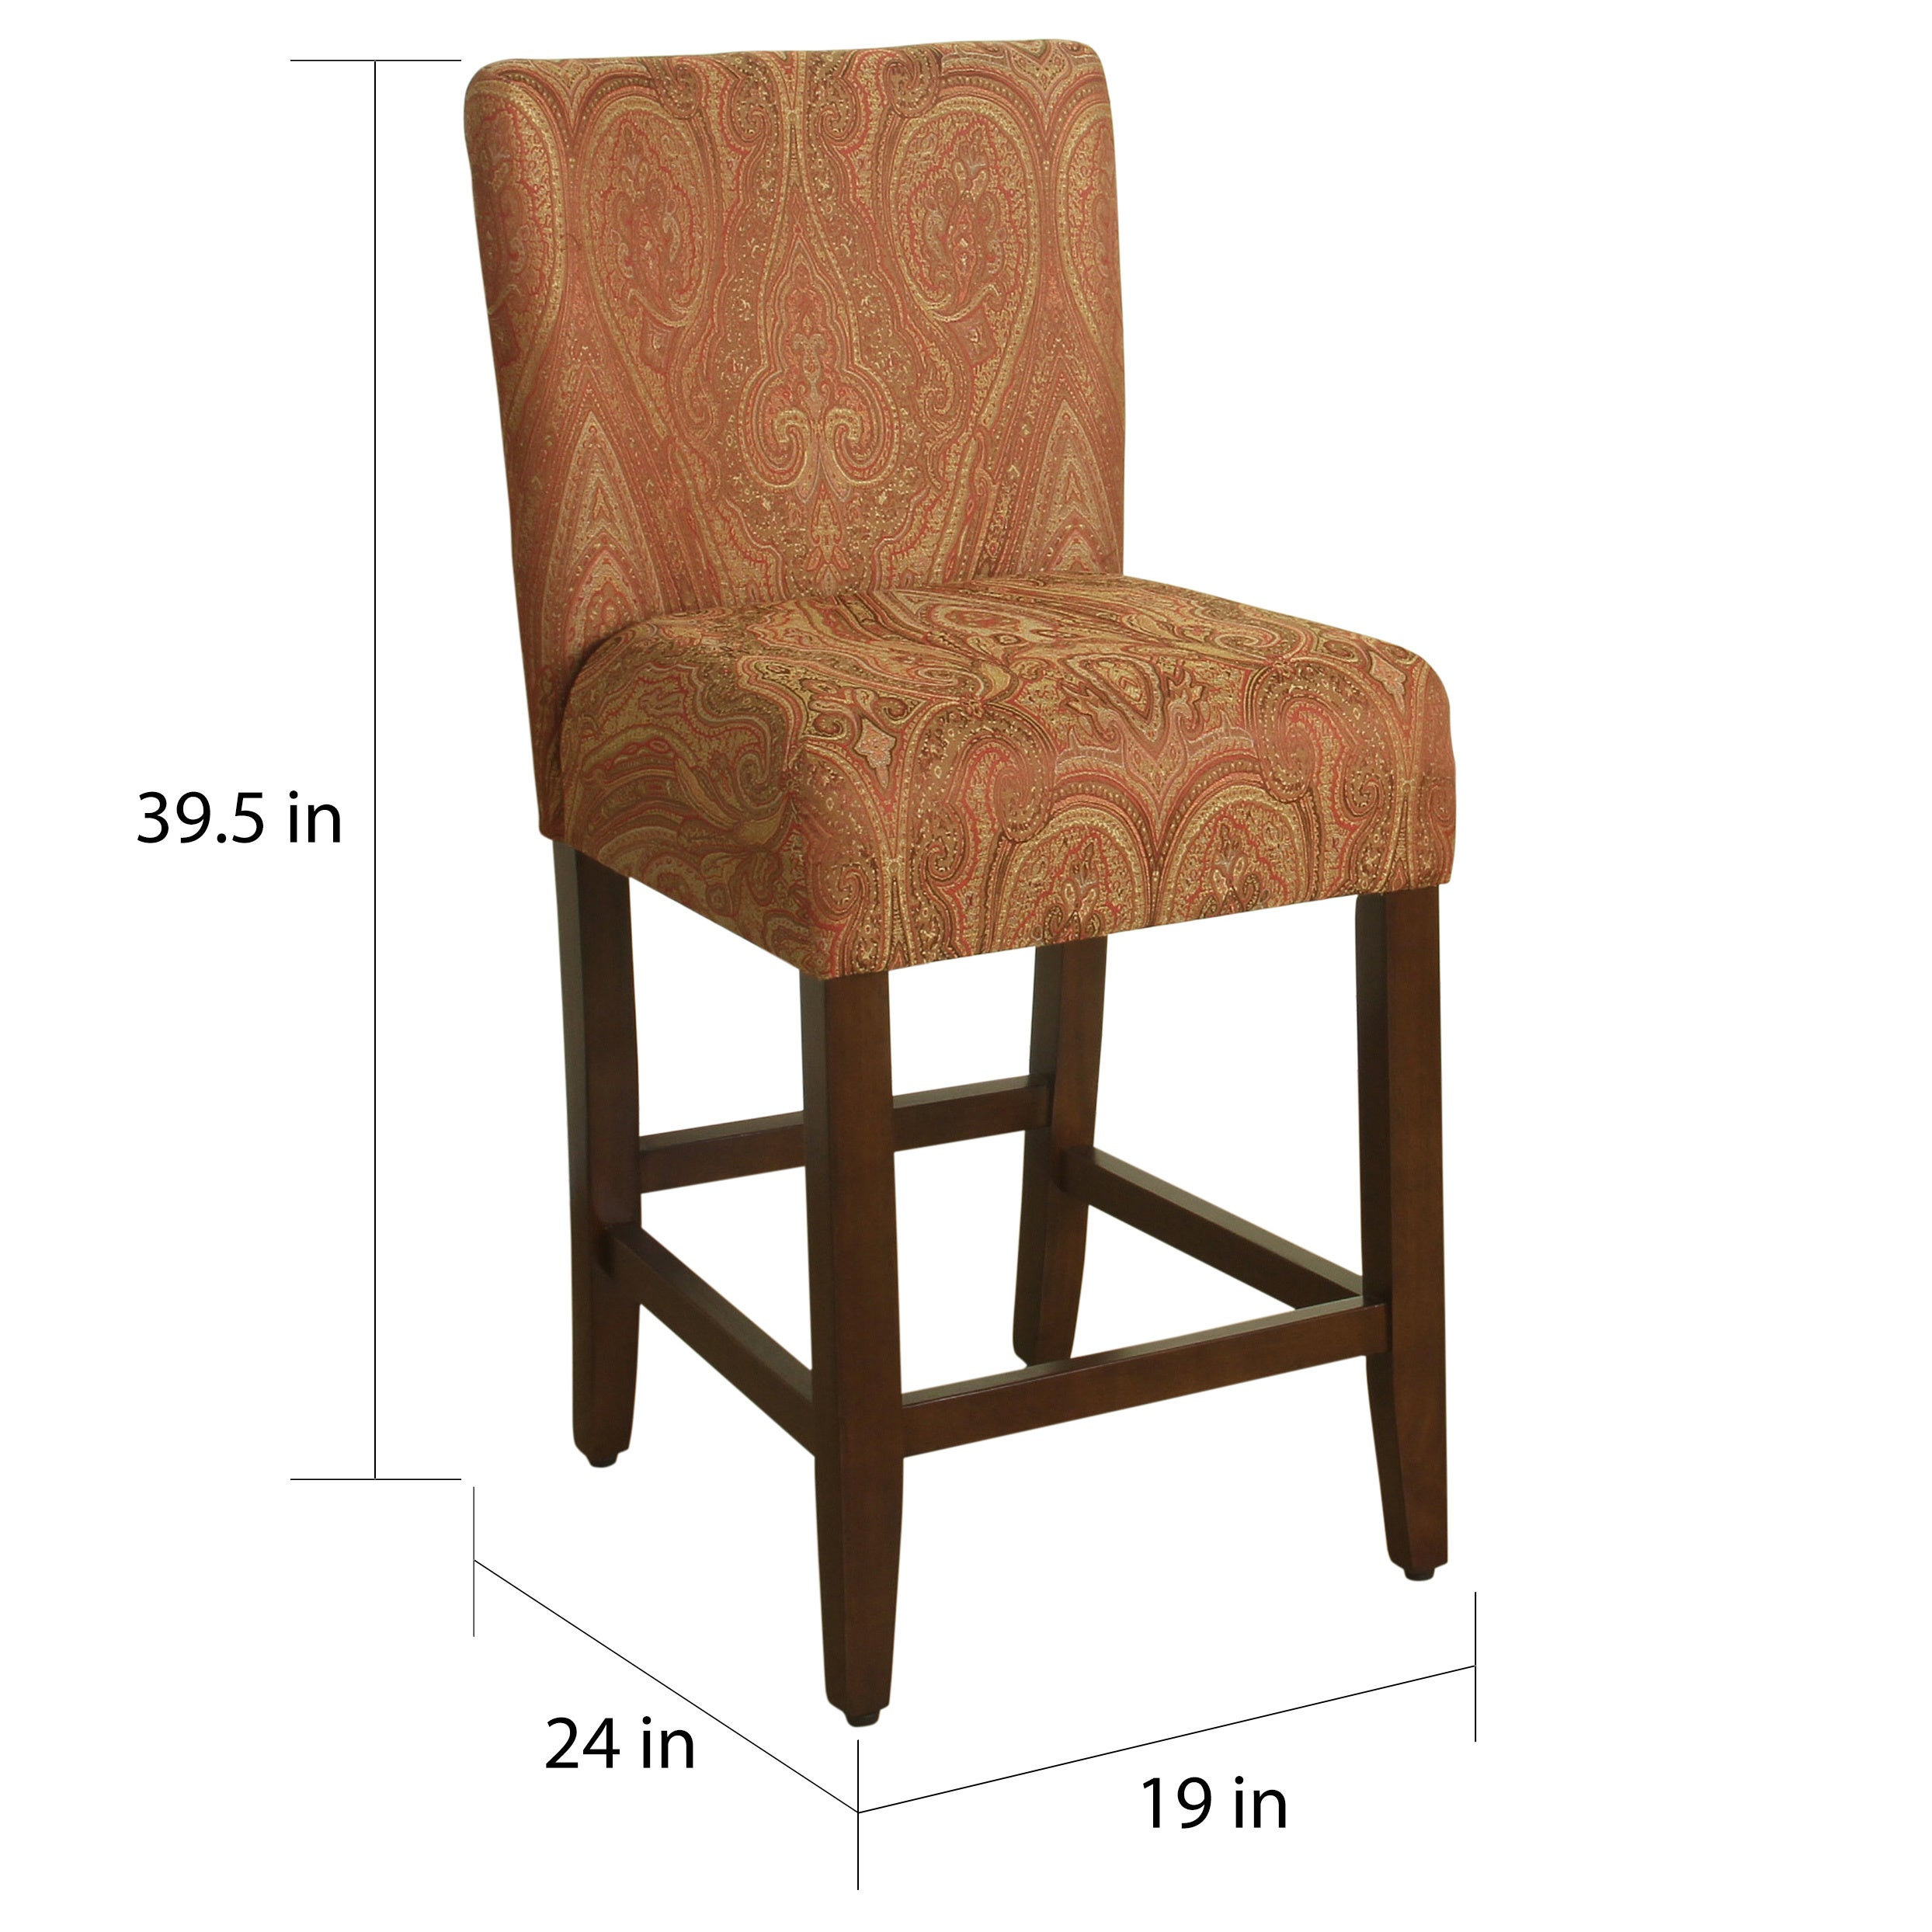 Enjoyable Homepop 24 Inch Counter Height Red Gold Damask Upholstered Barstool Gmtry Best Dining Table And Chair Ideas Images Gmtryco